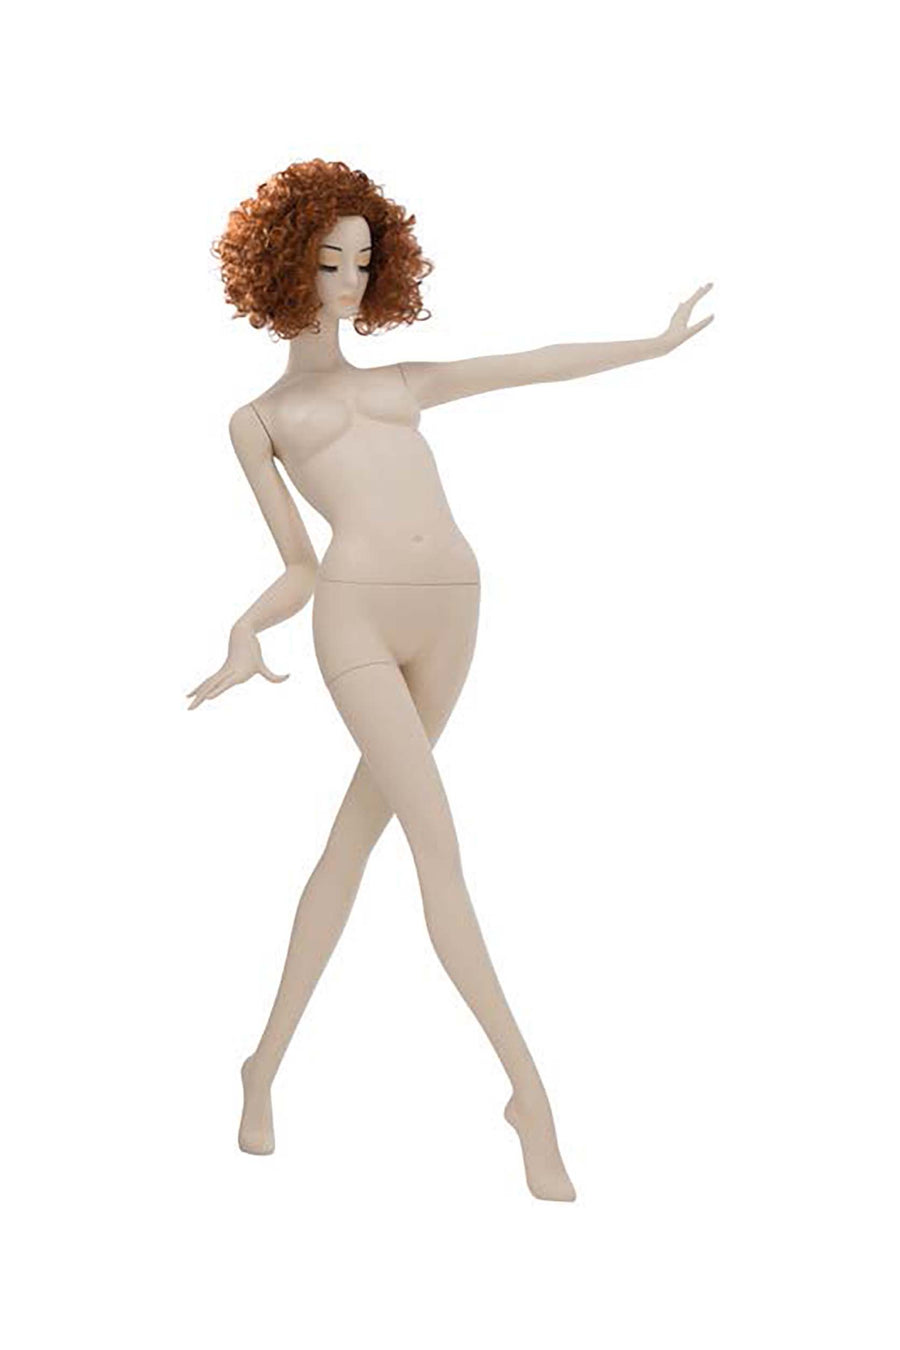 light skin tone female mannequin with left arm straight out, right arm bent, and right leg crossed in front of left